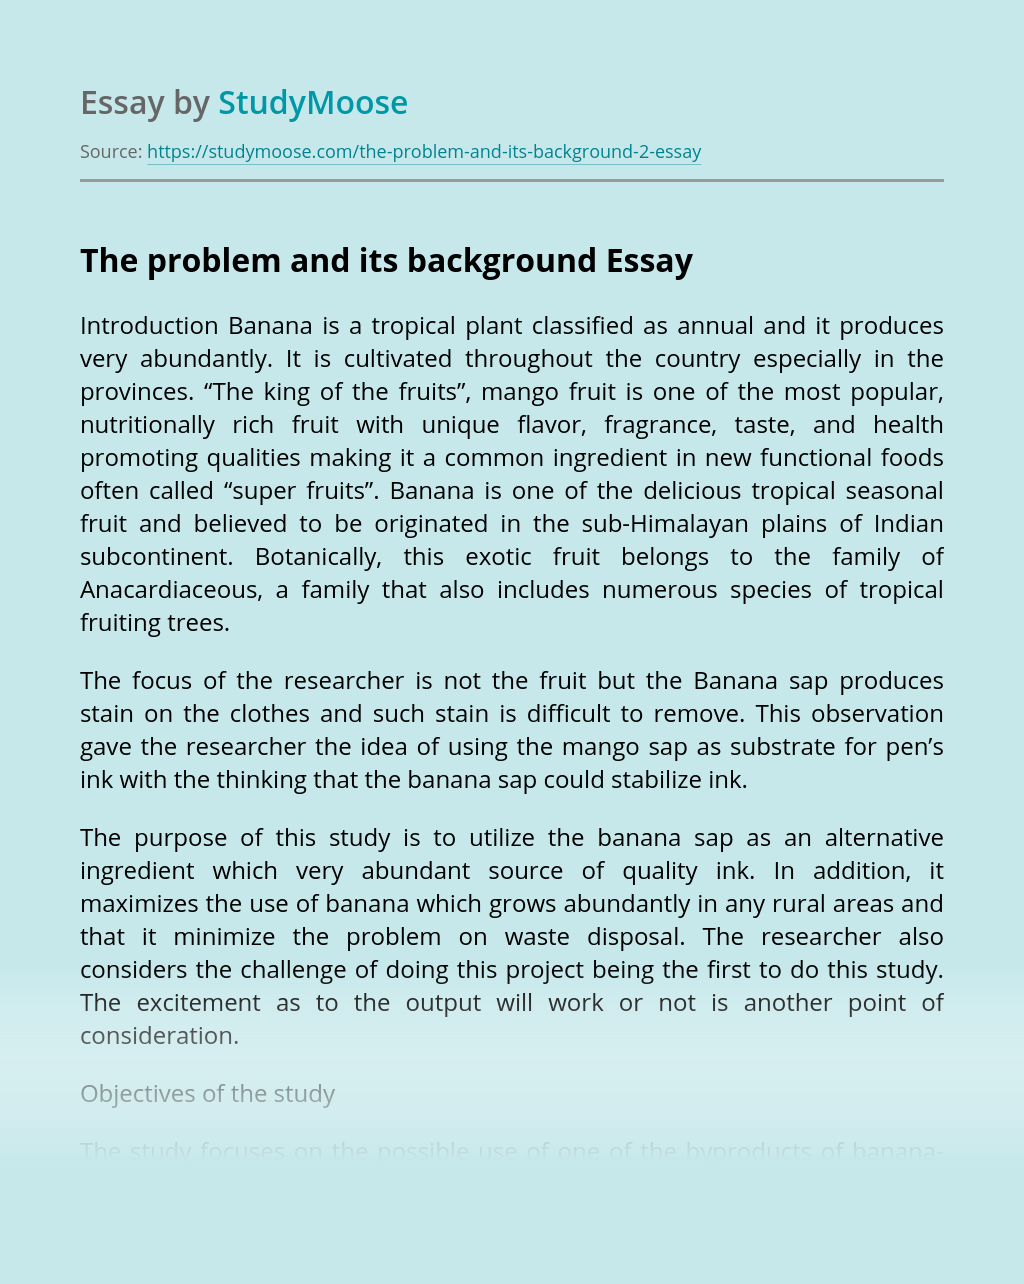 The problem and its background